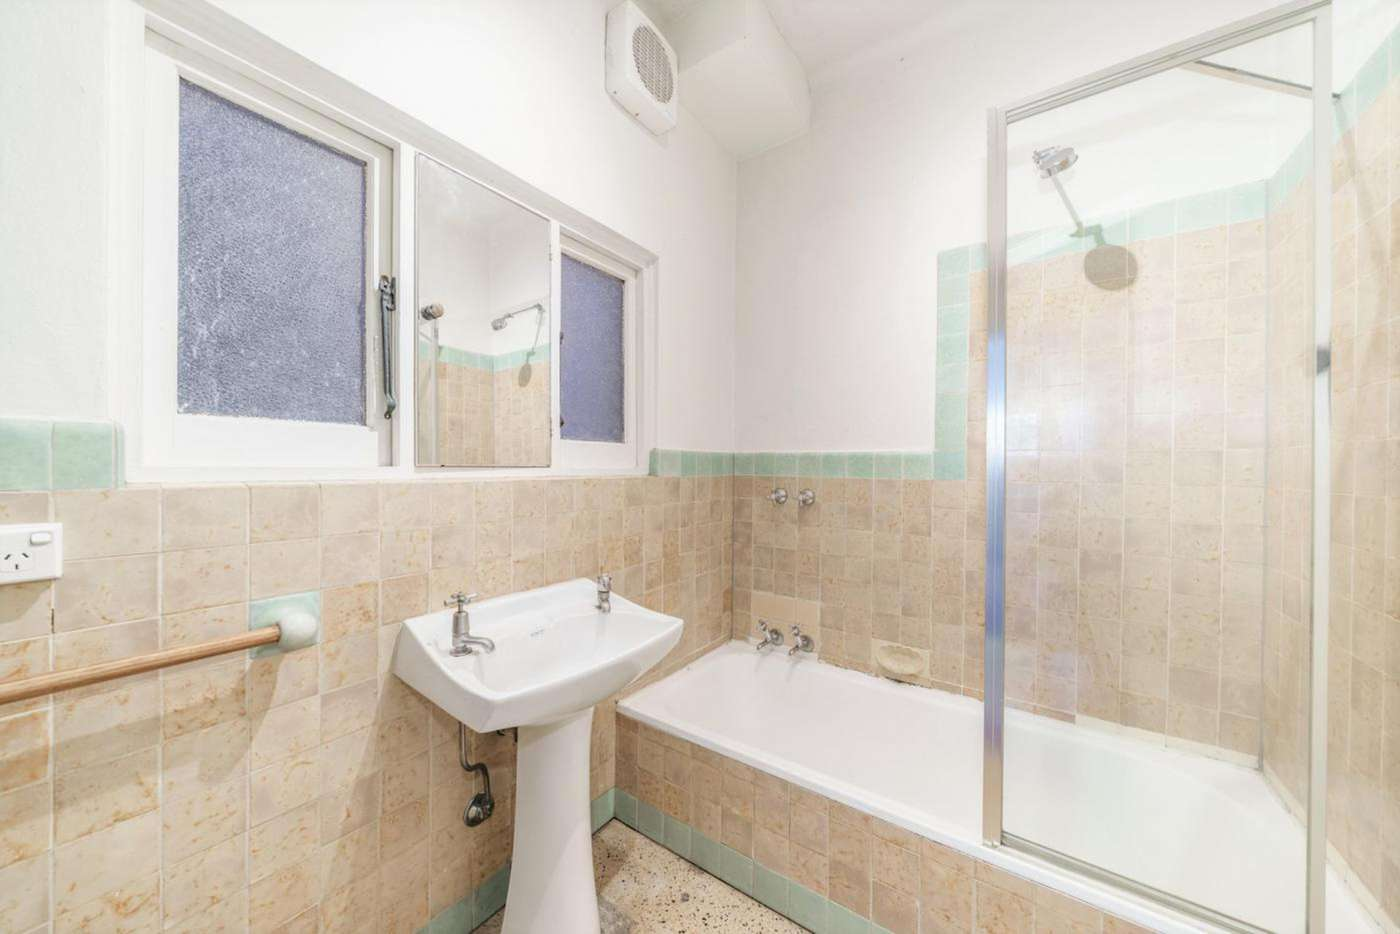 Fifth view of Homely apartment listing, 1/539 Orrong Road, Armadale VIC 3143